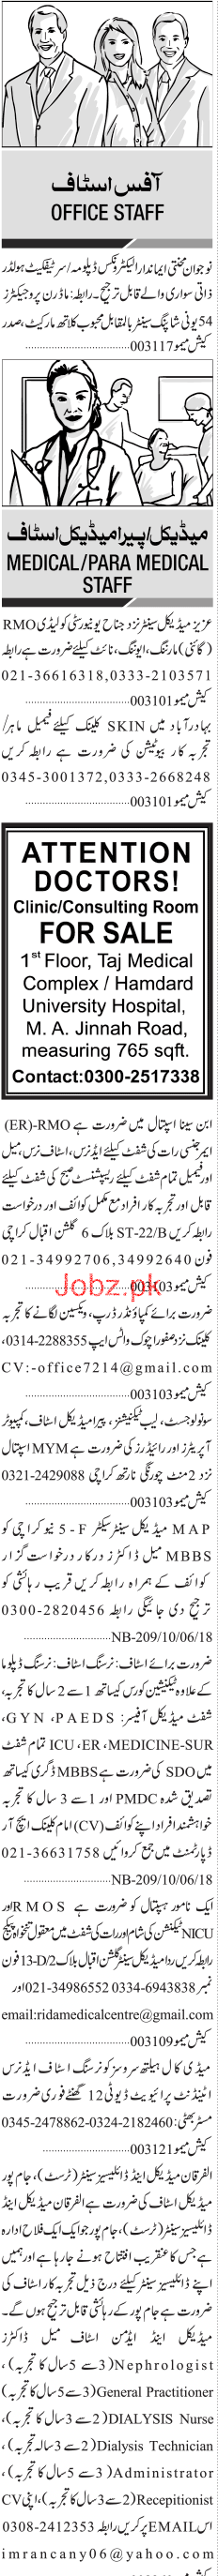 Diploma Holders, Gynecologists Job Opportunity